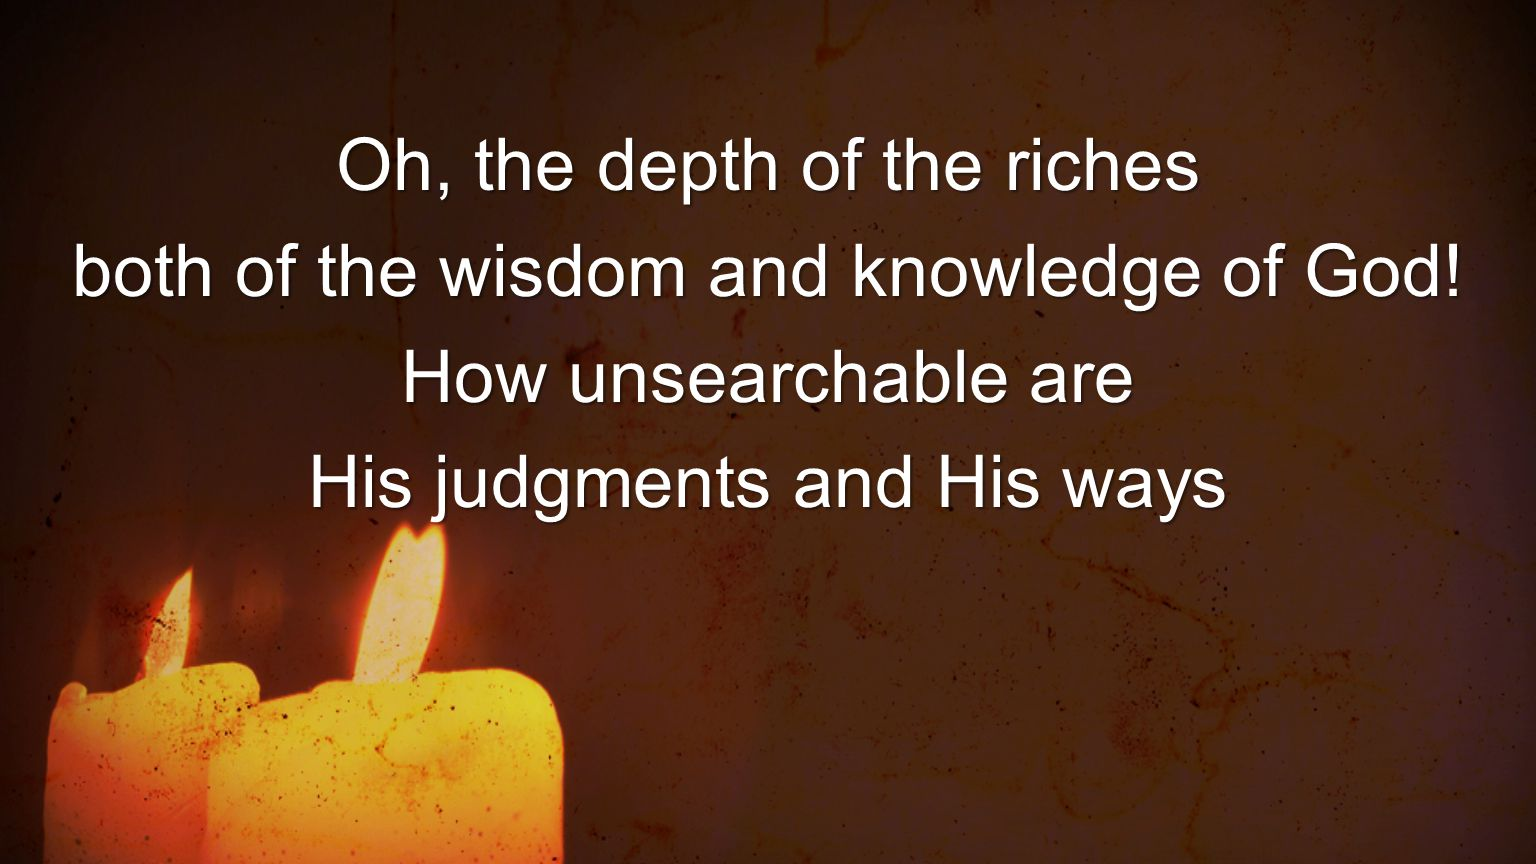 Oh, the depth of the riches both of the wisdom and knowledge of God!